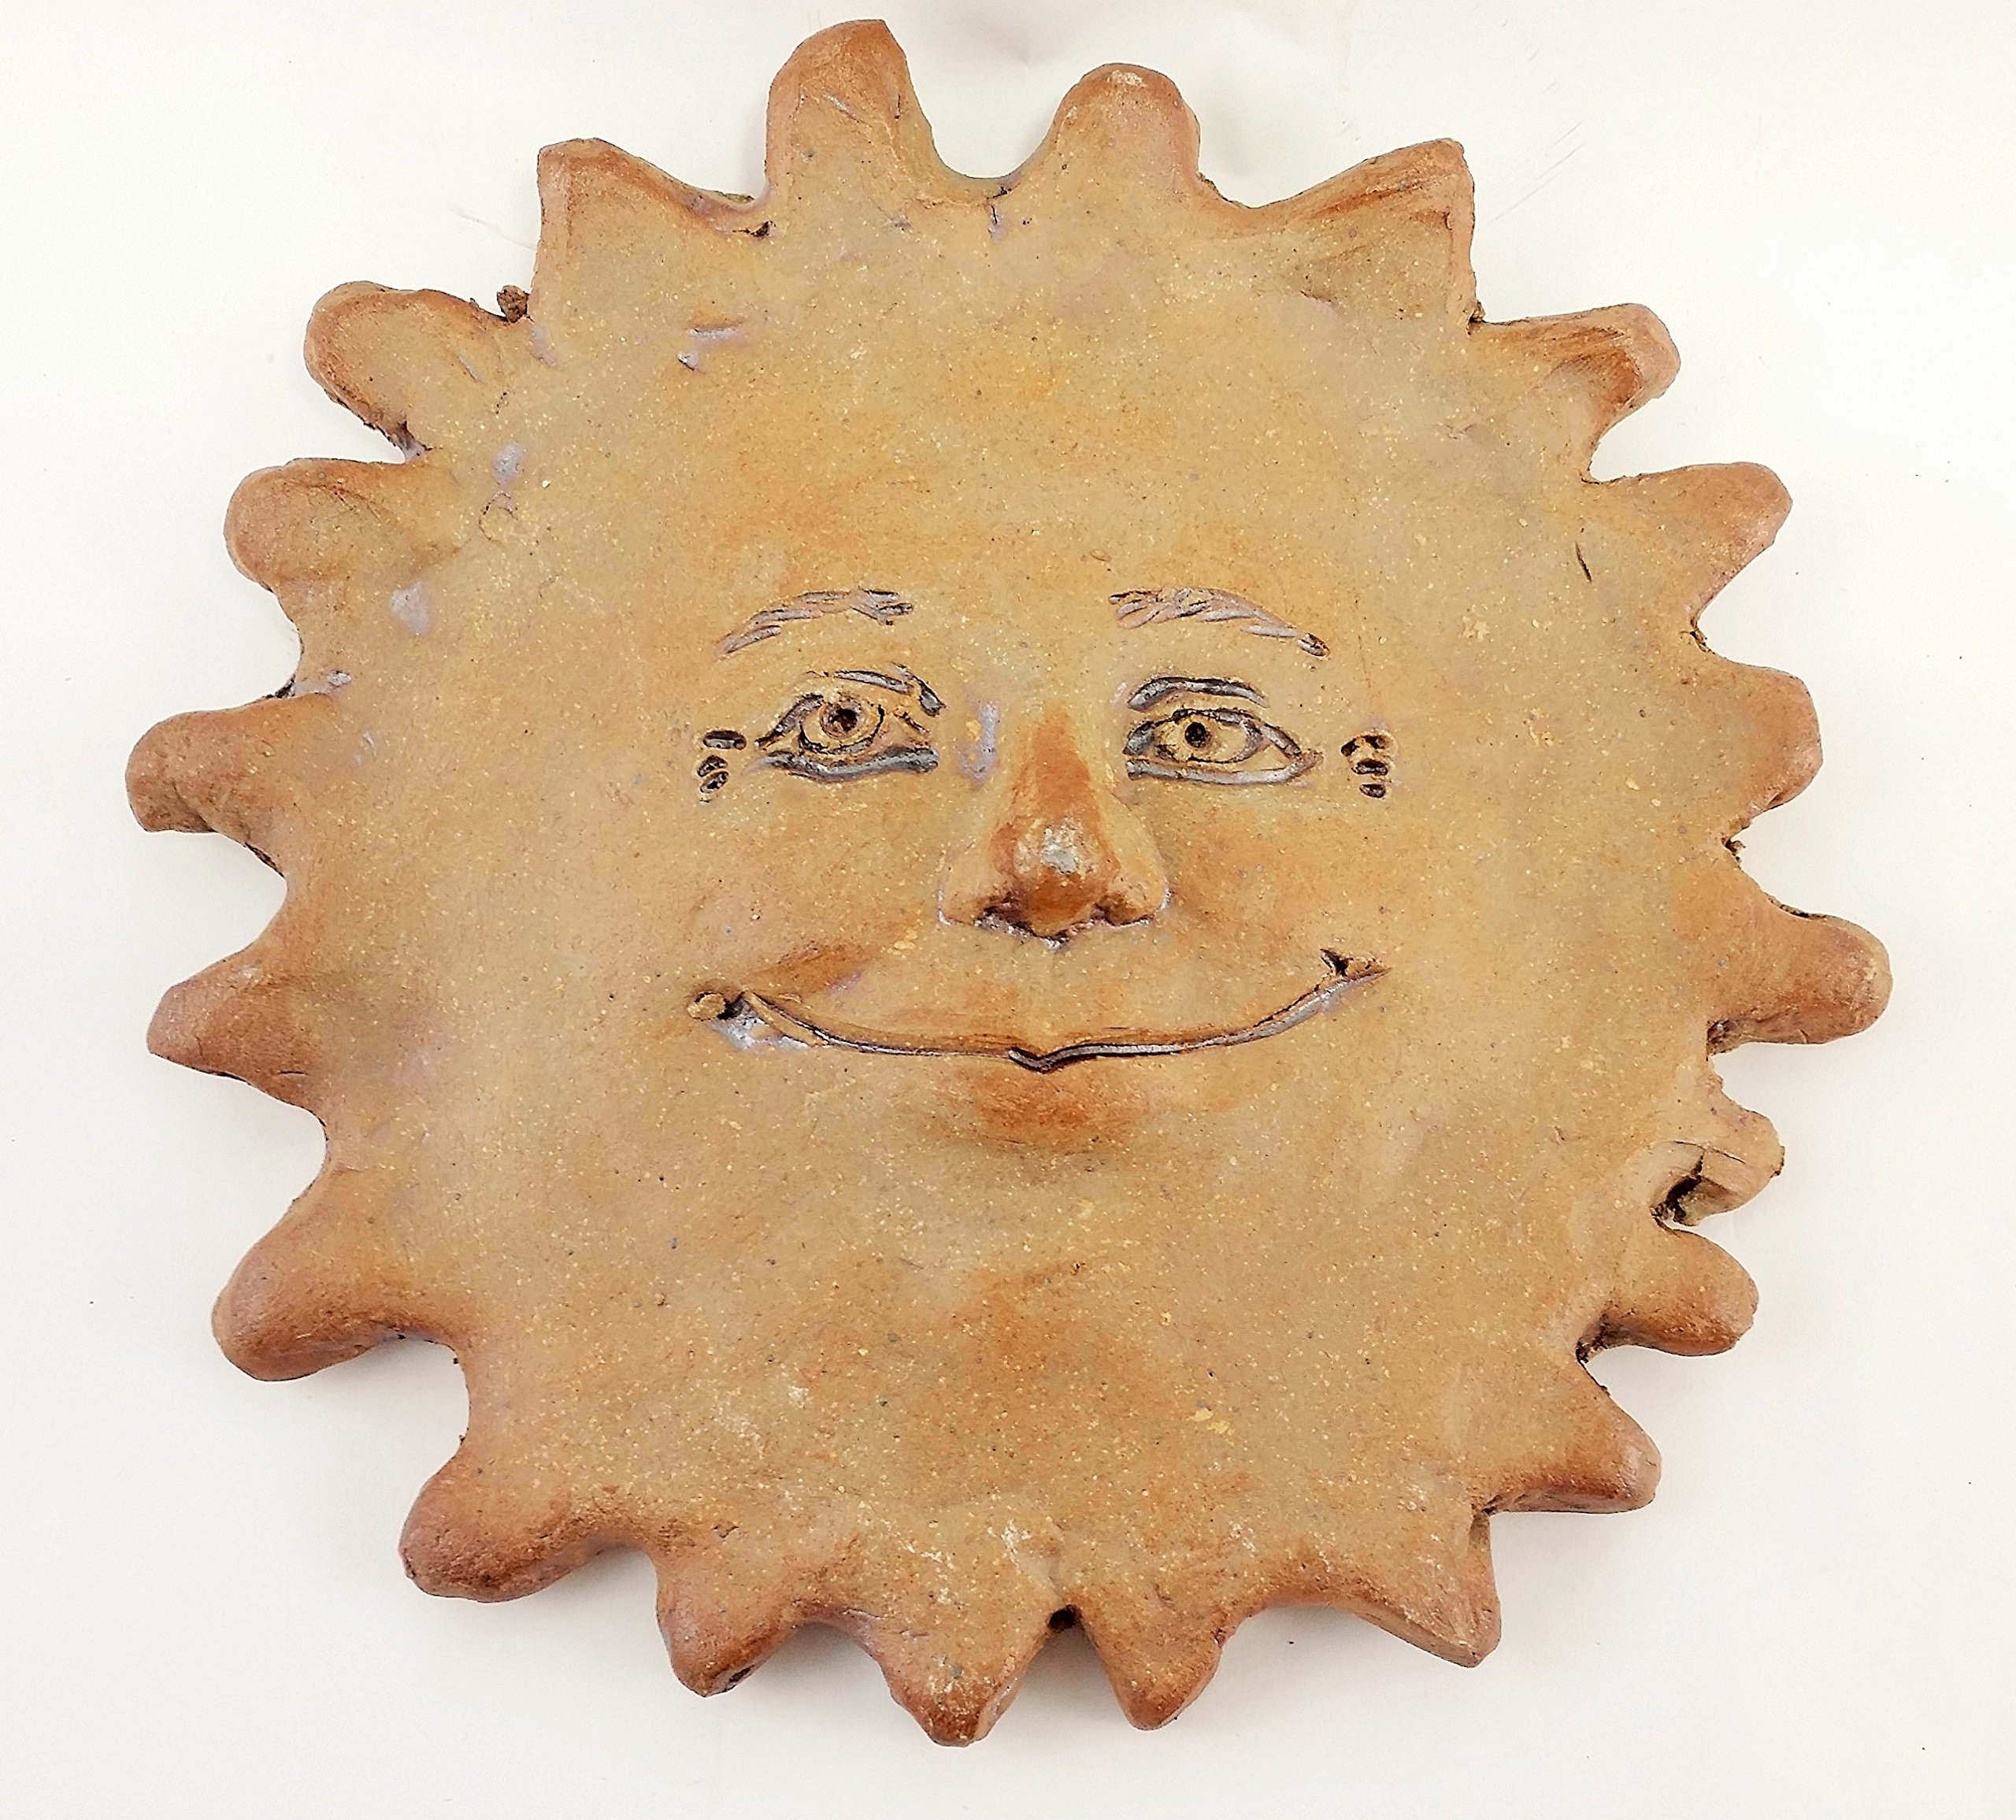 Aunt Chris' Products - 8 Inch Clay Sun Face - Full of Character and Delight - Use Inside Or Outdoors - Made In America